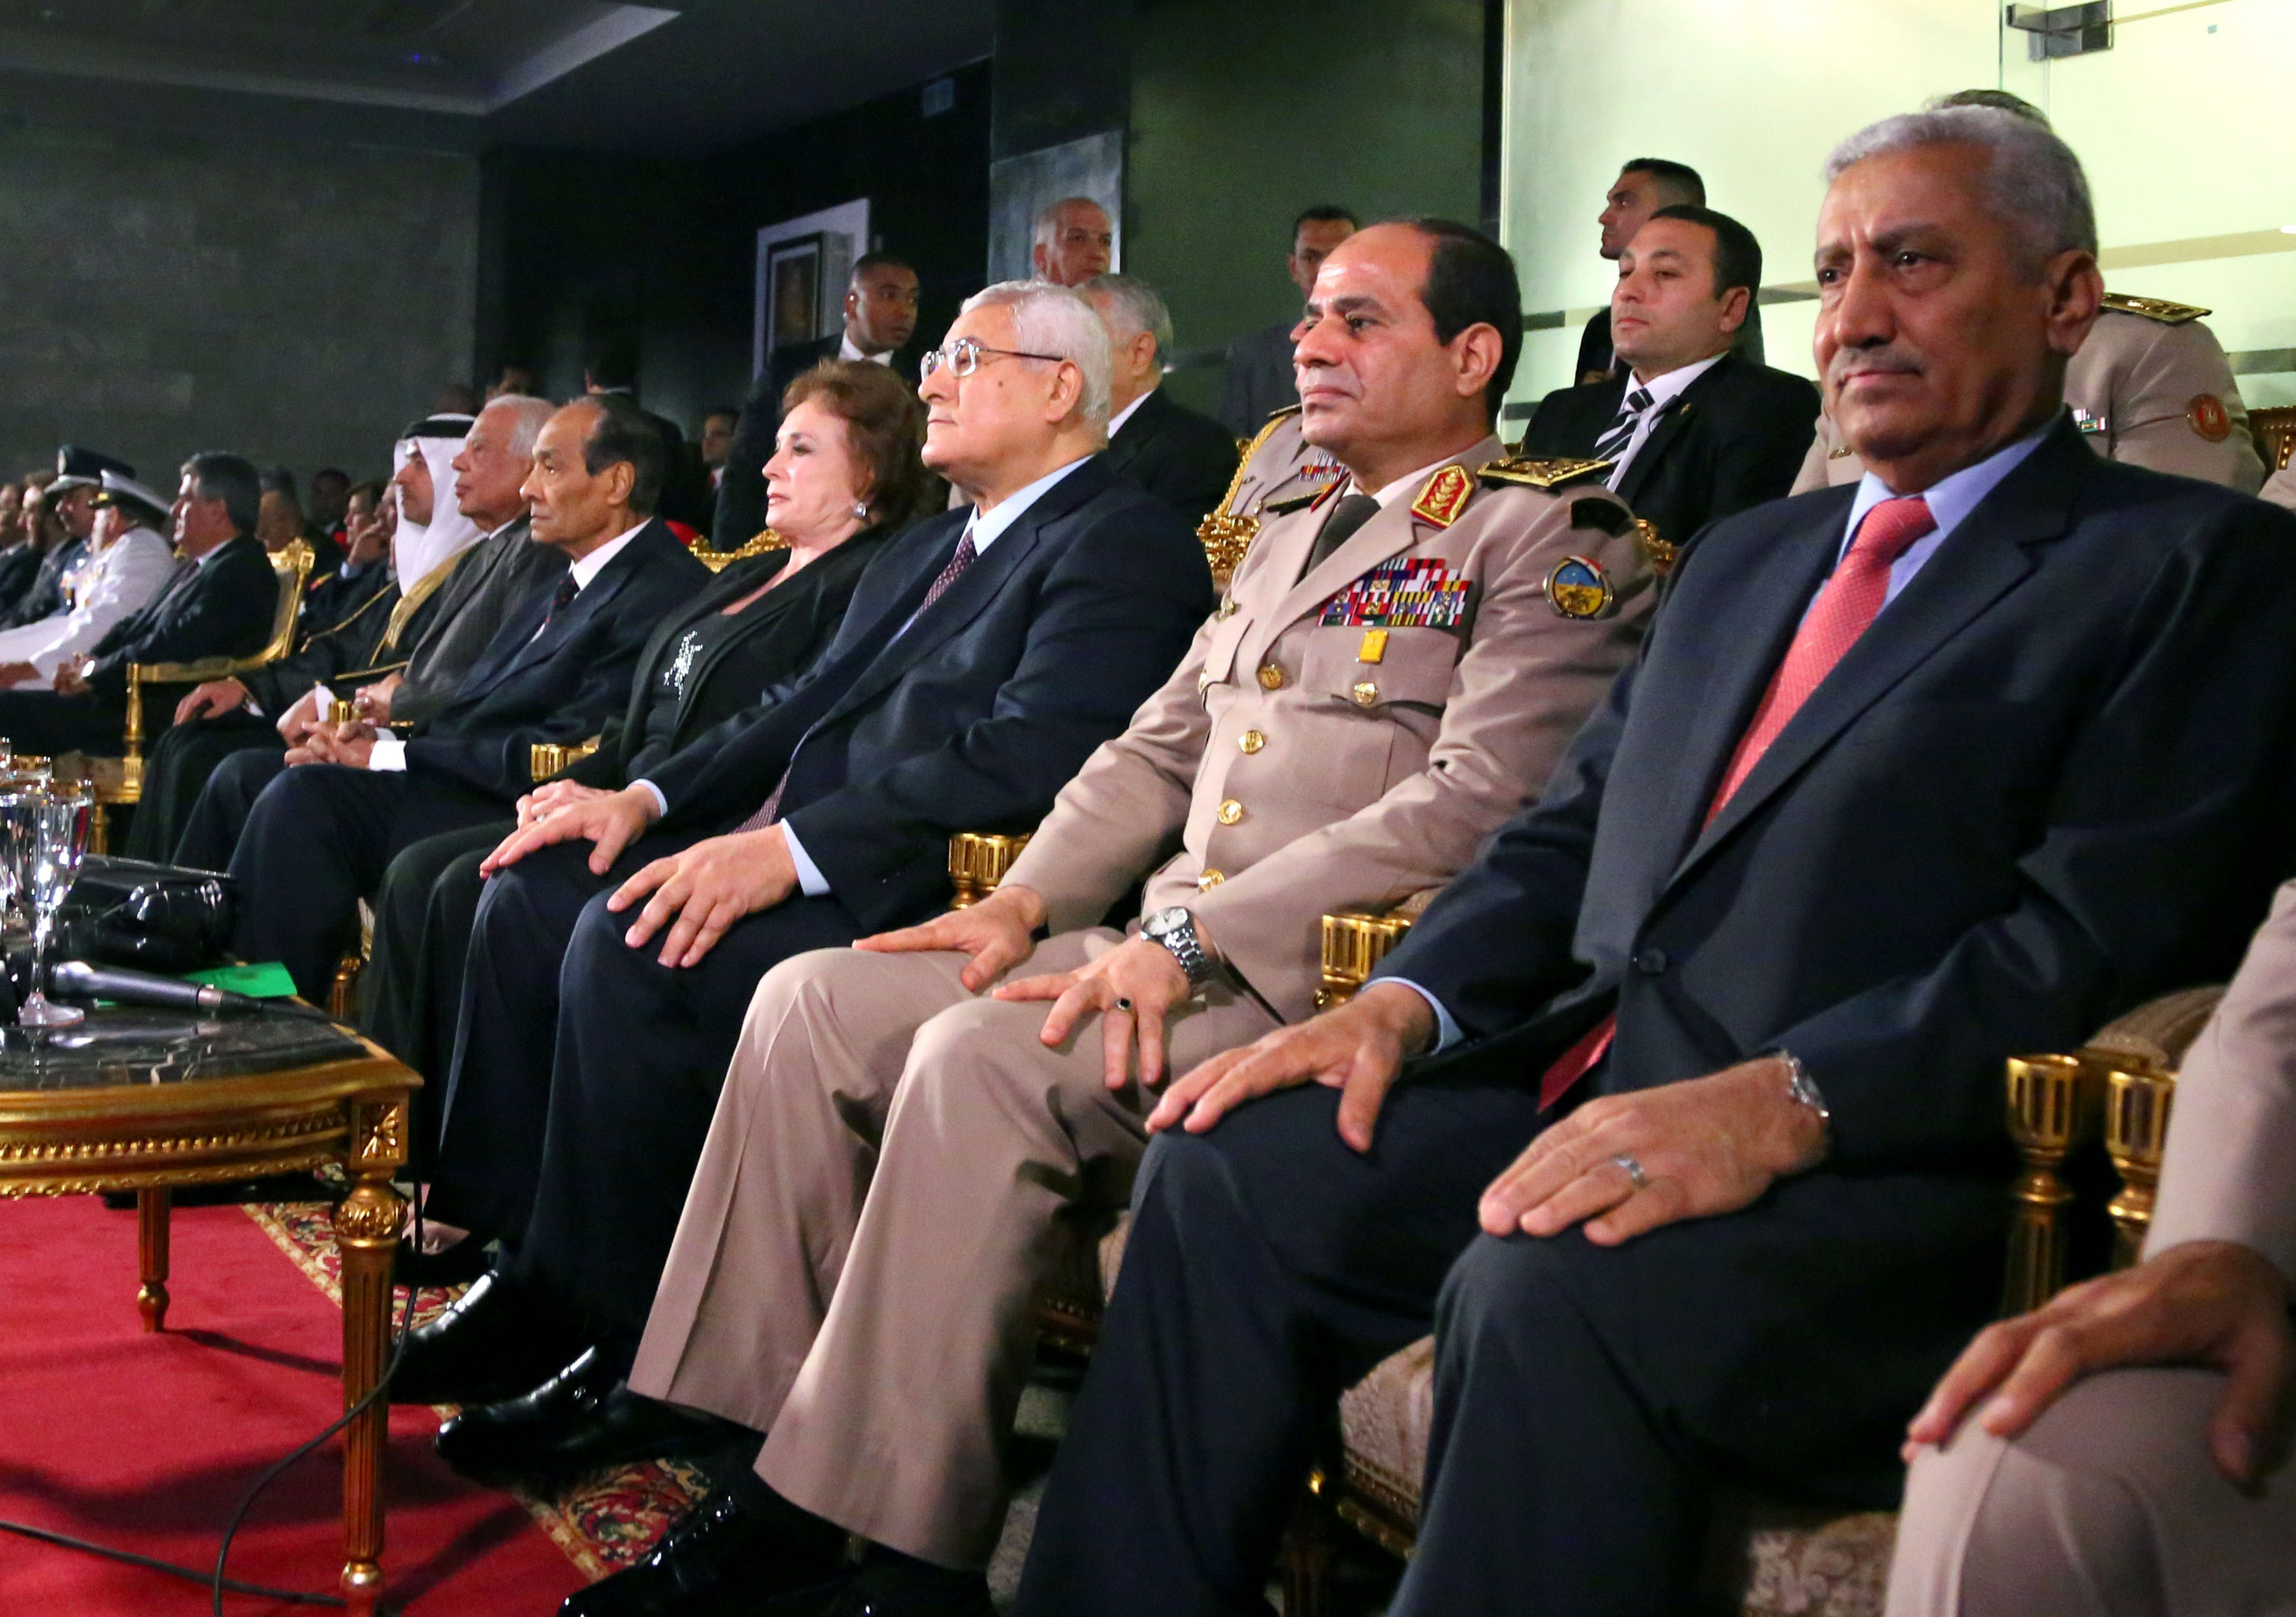 A handout picture released by the Egyptian Presidency shows Egypt's interim president Adly Mansour (3R) and General Abdel Fattah al-Sisi (2R) attending a ceremony to mark the anniversary of the 1973 Arab-Israeli war, on October 6, 2013 in the capital, Cairo. (AFP Photo)